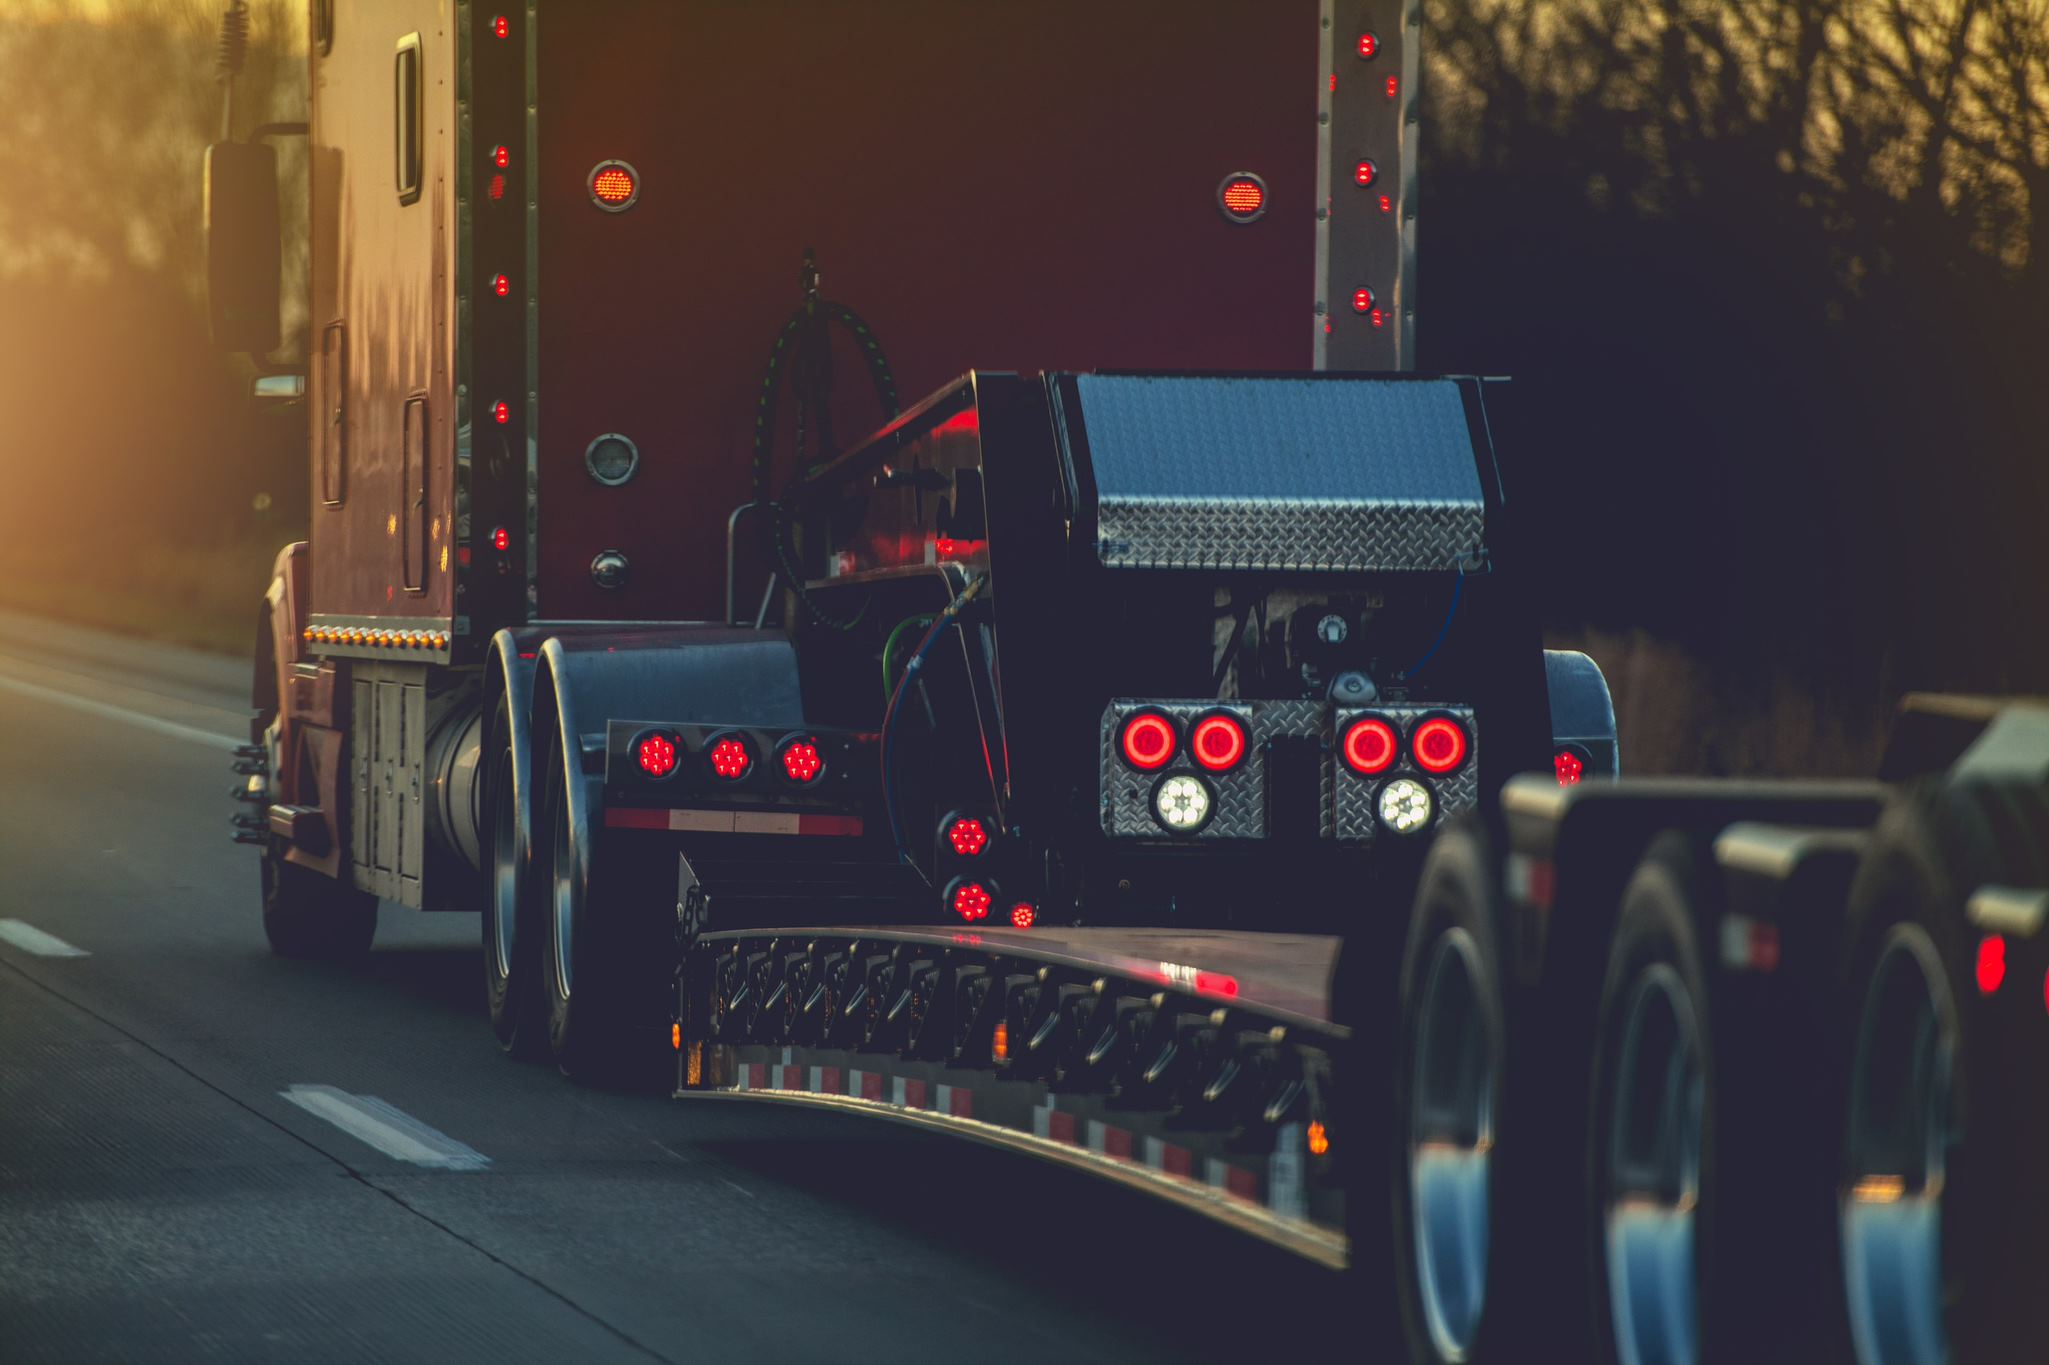 Tractor-Trailer Safety Rules